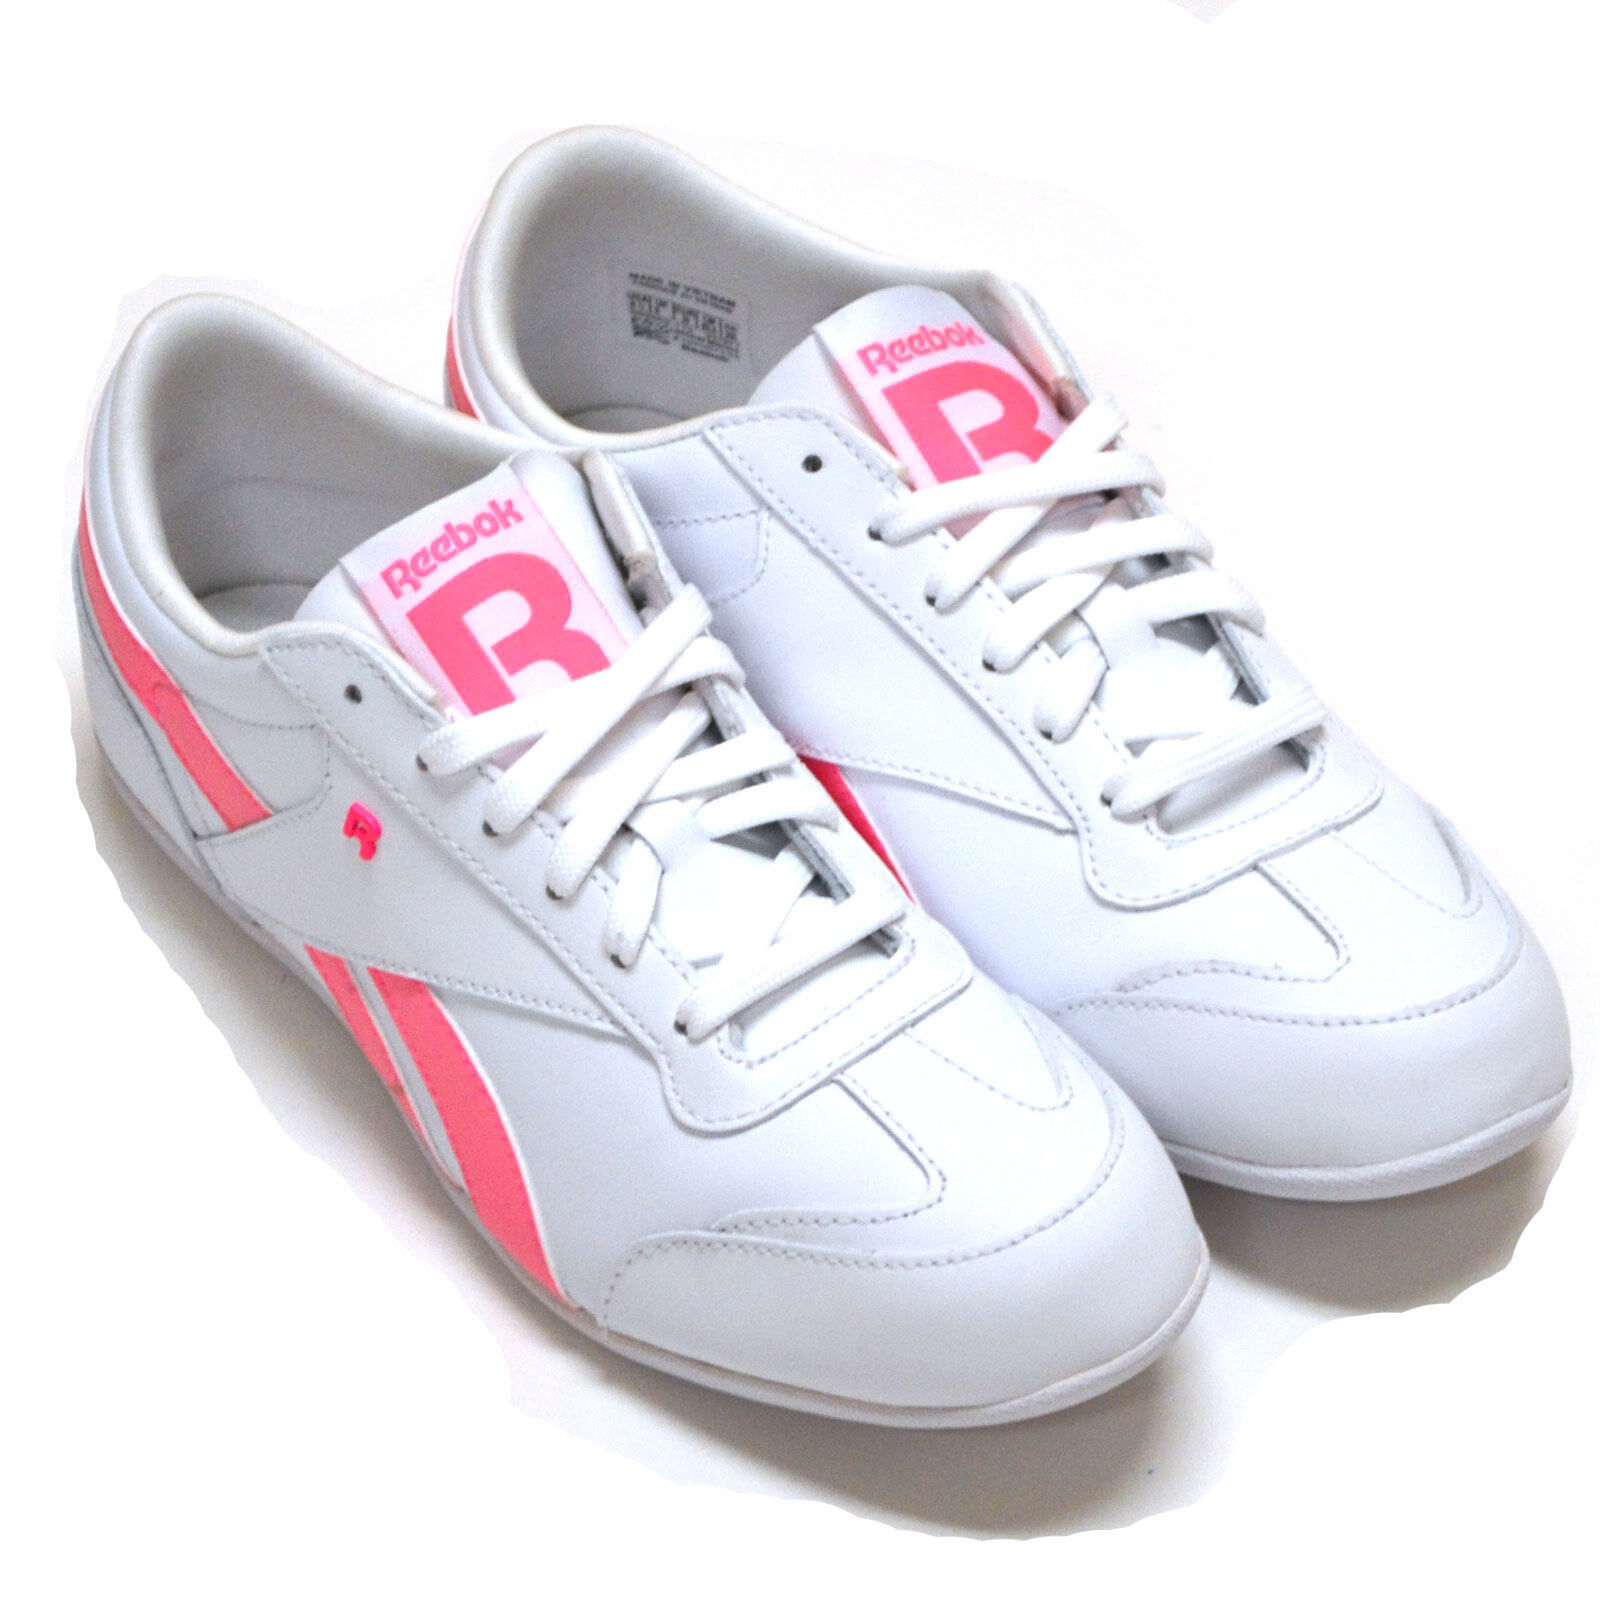 Reebok Damenschuhe Classic Schuhes Lucky Wish Sneakers V47671 Pink Weiß Leder Sneakers Wish New 2a2ed8